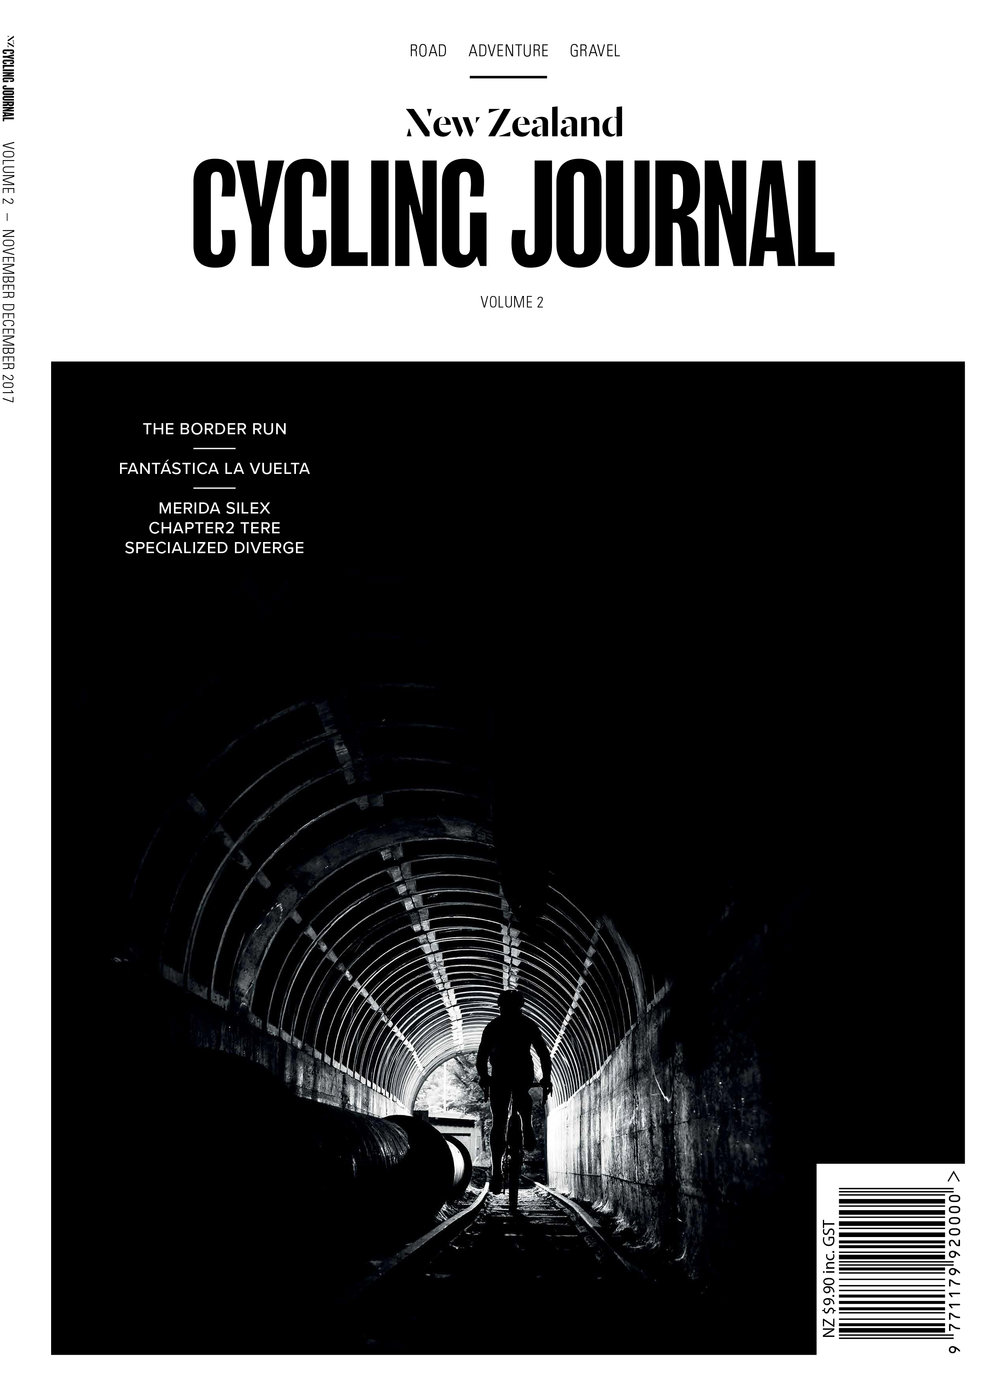 NZ Cycling Journal - Vol.2 Cover.jpg